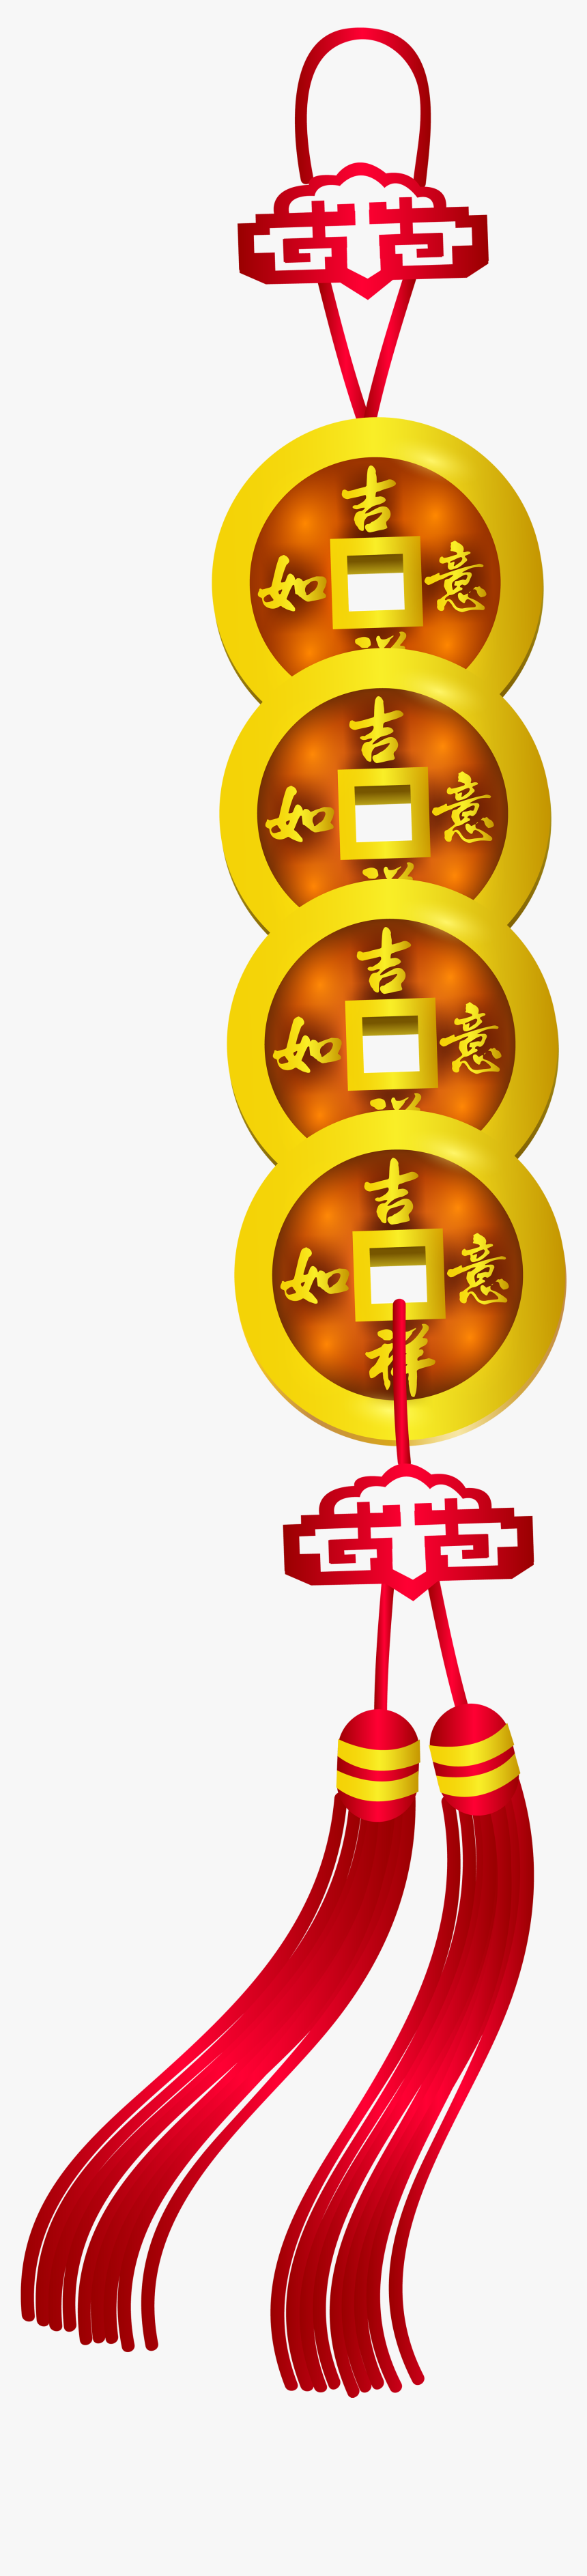 Chinese New Year Decoration Png Clip Art - New Year Chinese Png, Transparent Png, Free Download